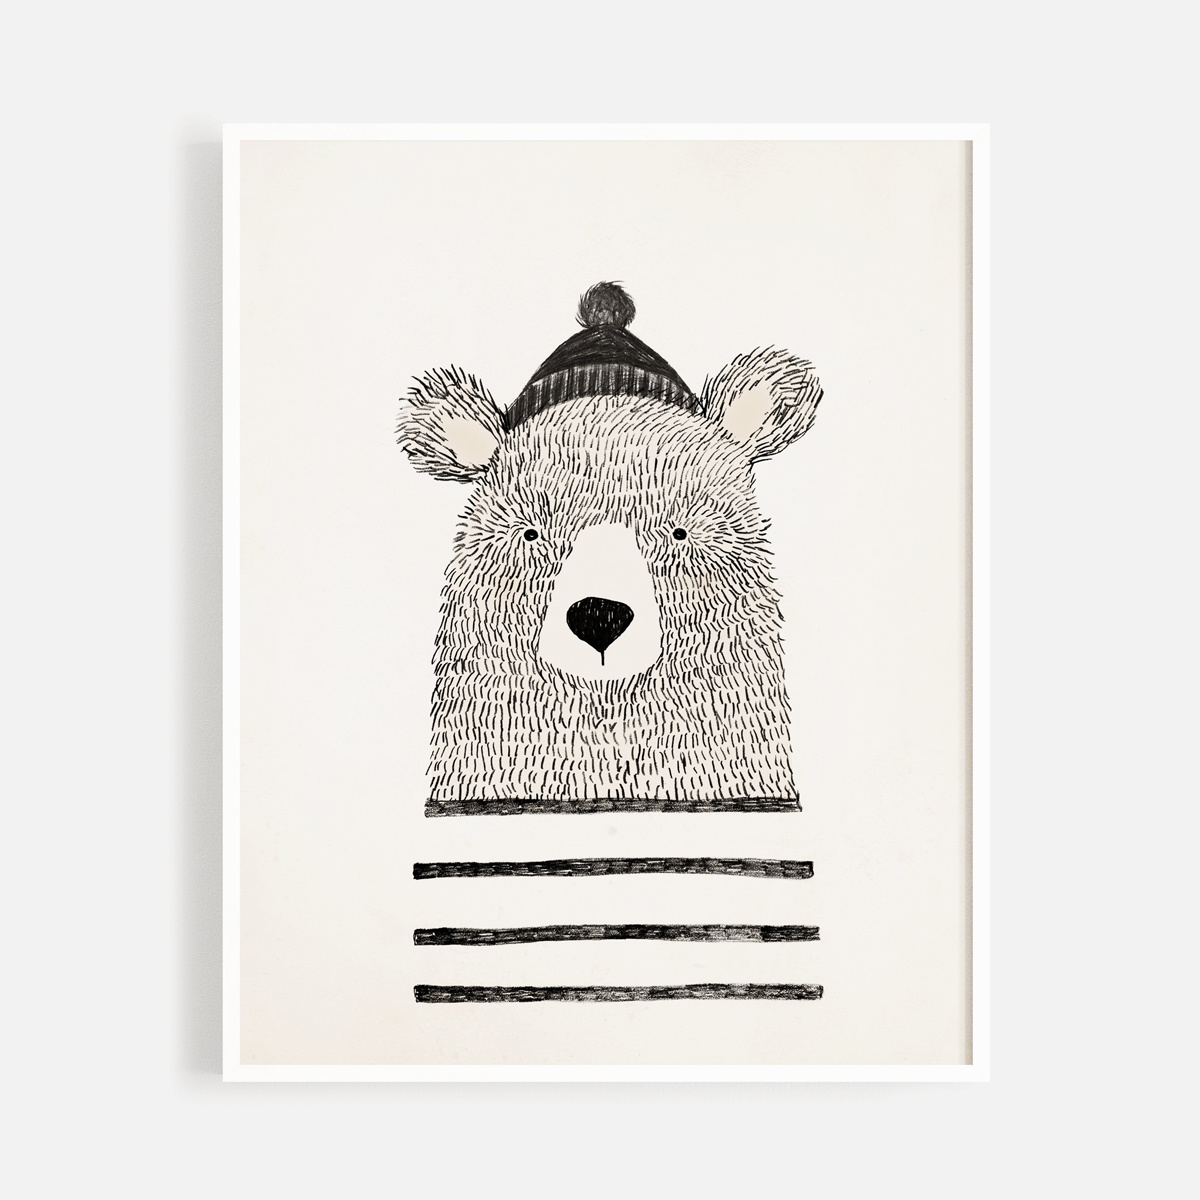 "Rylee + Cru - RC Rylee + Cru - Winter Bear 8x10"" Art Print"